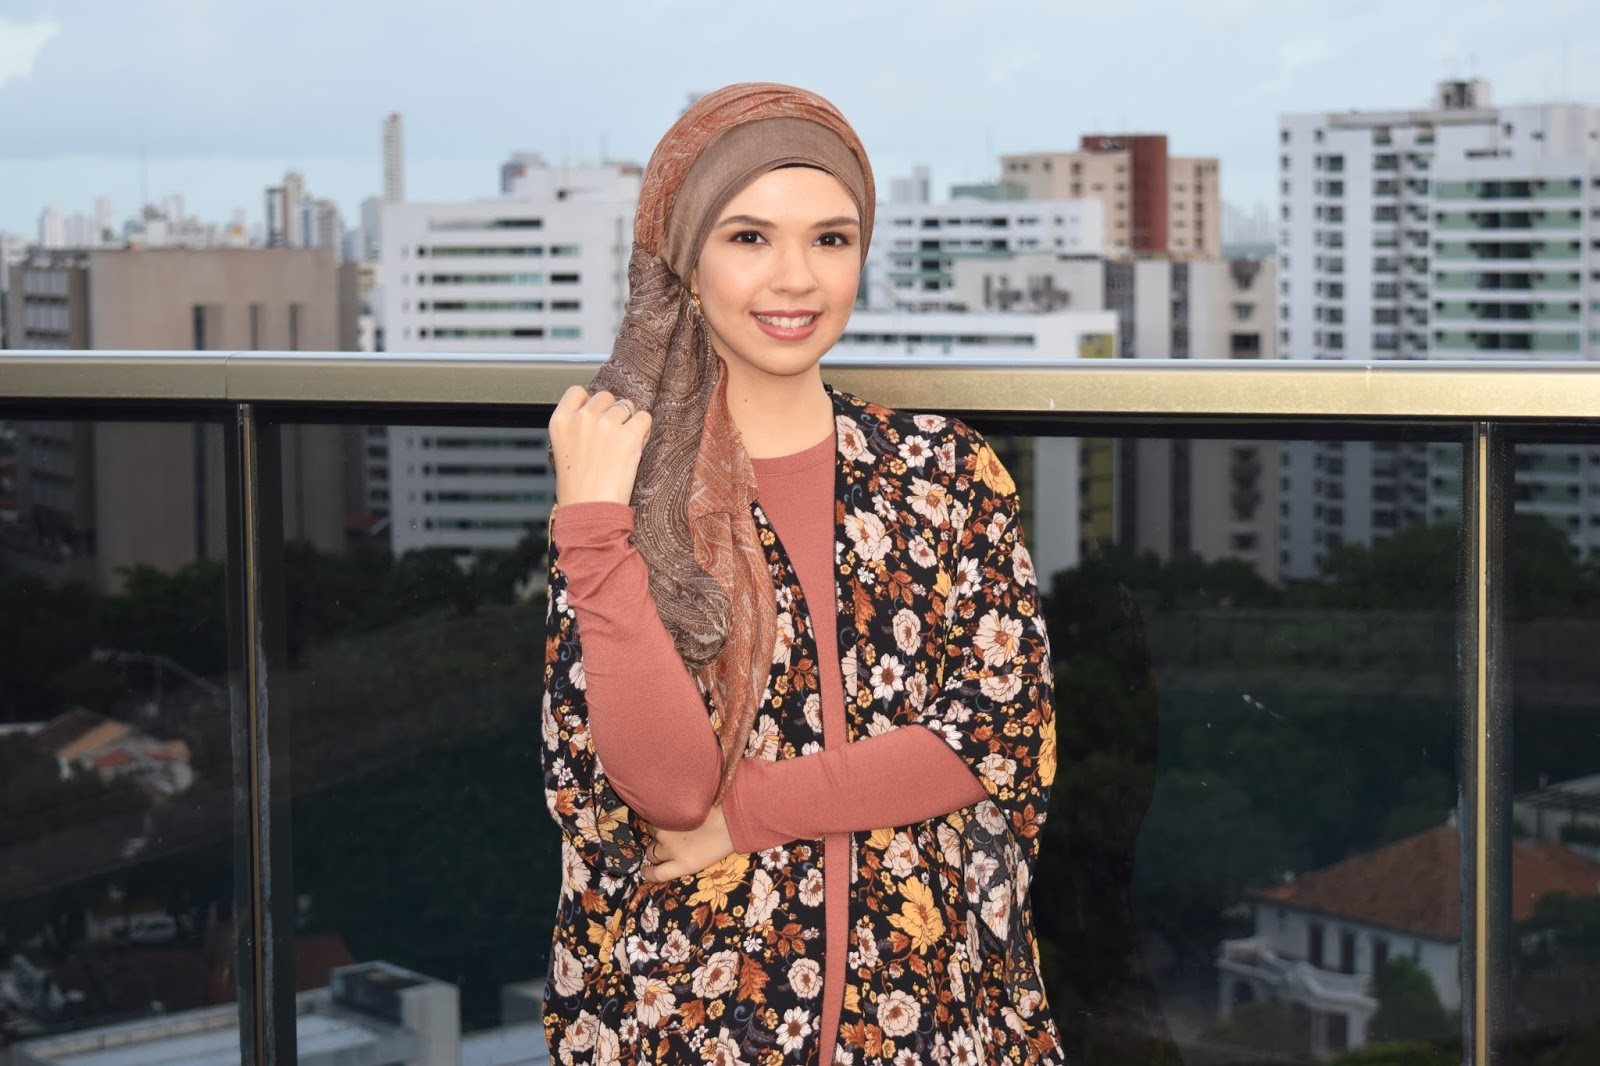 Ramadan Reflections & Eid Outfit // 2017 - Eid, eid mubarak, eid al fitr, islam, islam in Brazil, muslims, hijab, modesty, modest fashion, ramadan, outfit of the day, ootd